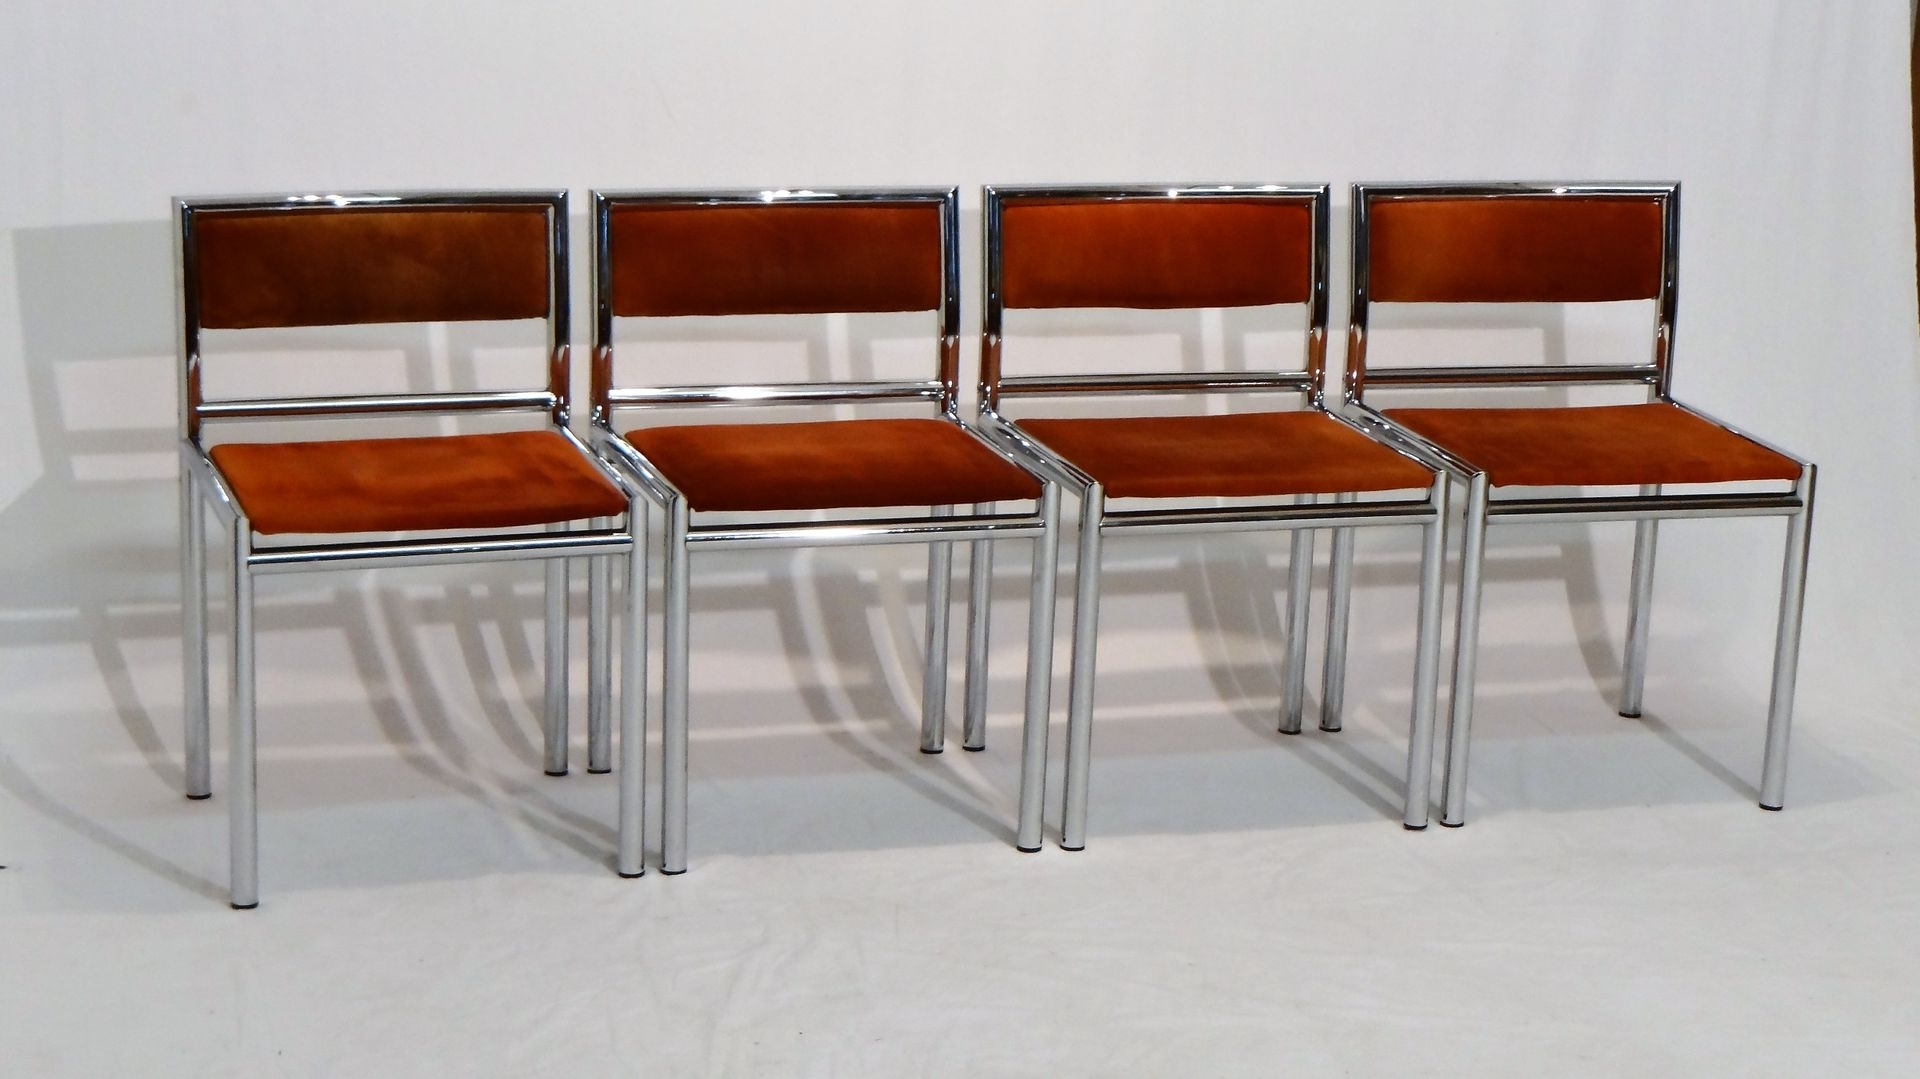 Fashionable Chrome Dining Chairs With Mid Century Dining Chairs In Tubular Chrome And Leather, Set Of  (View 21 of 25)